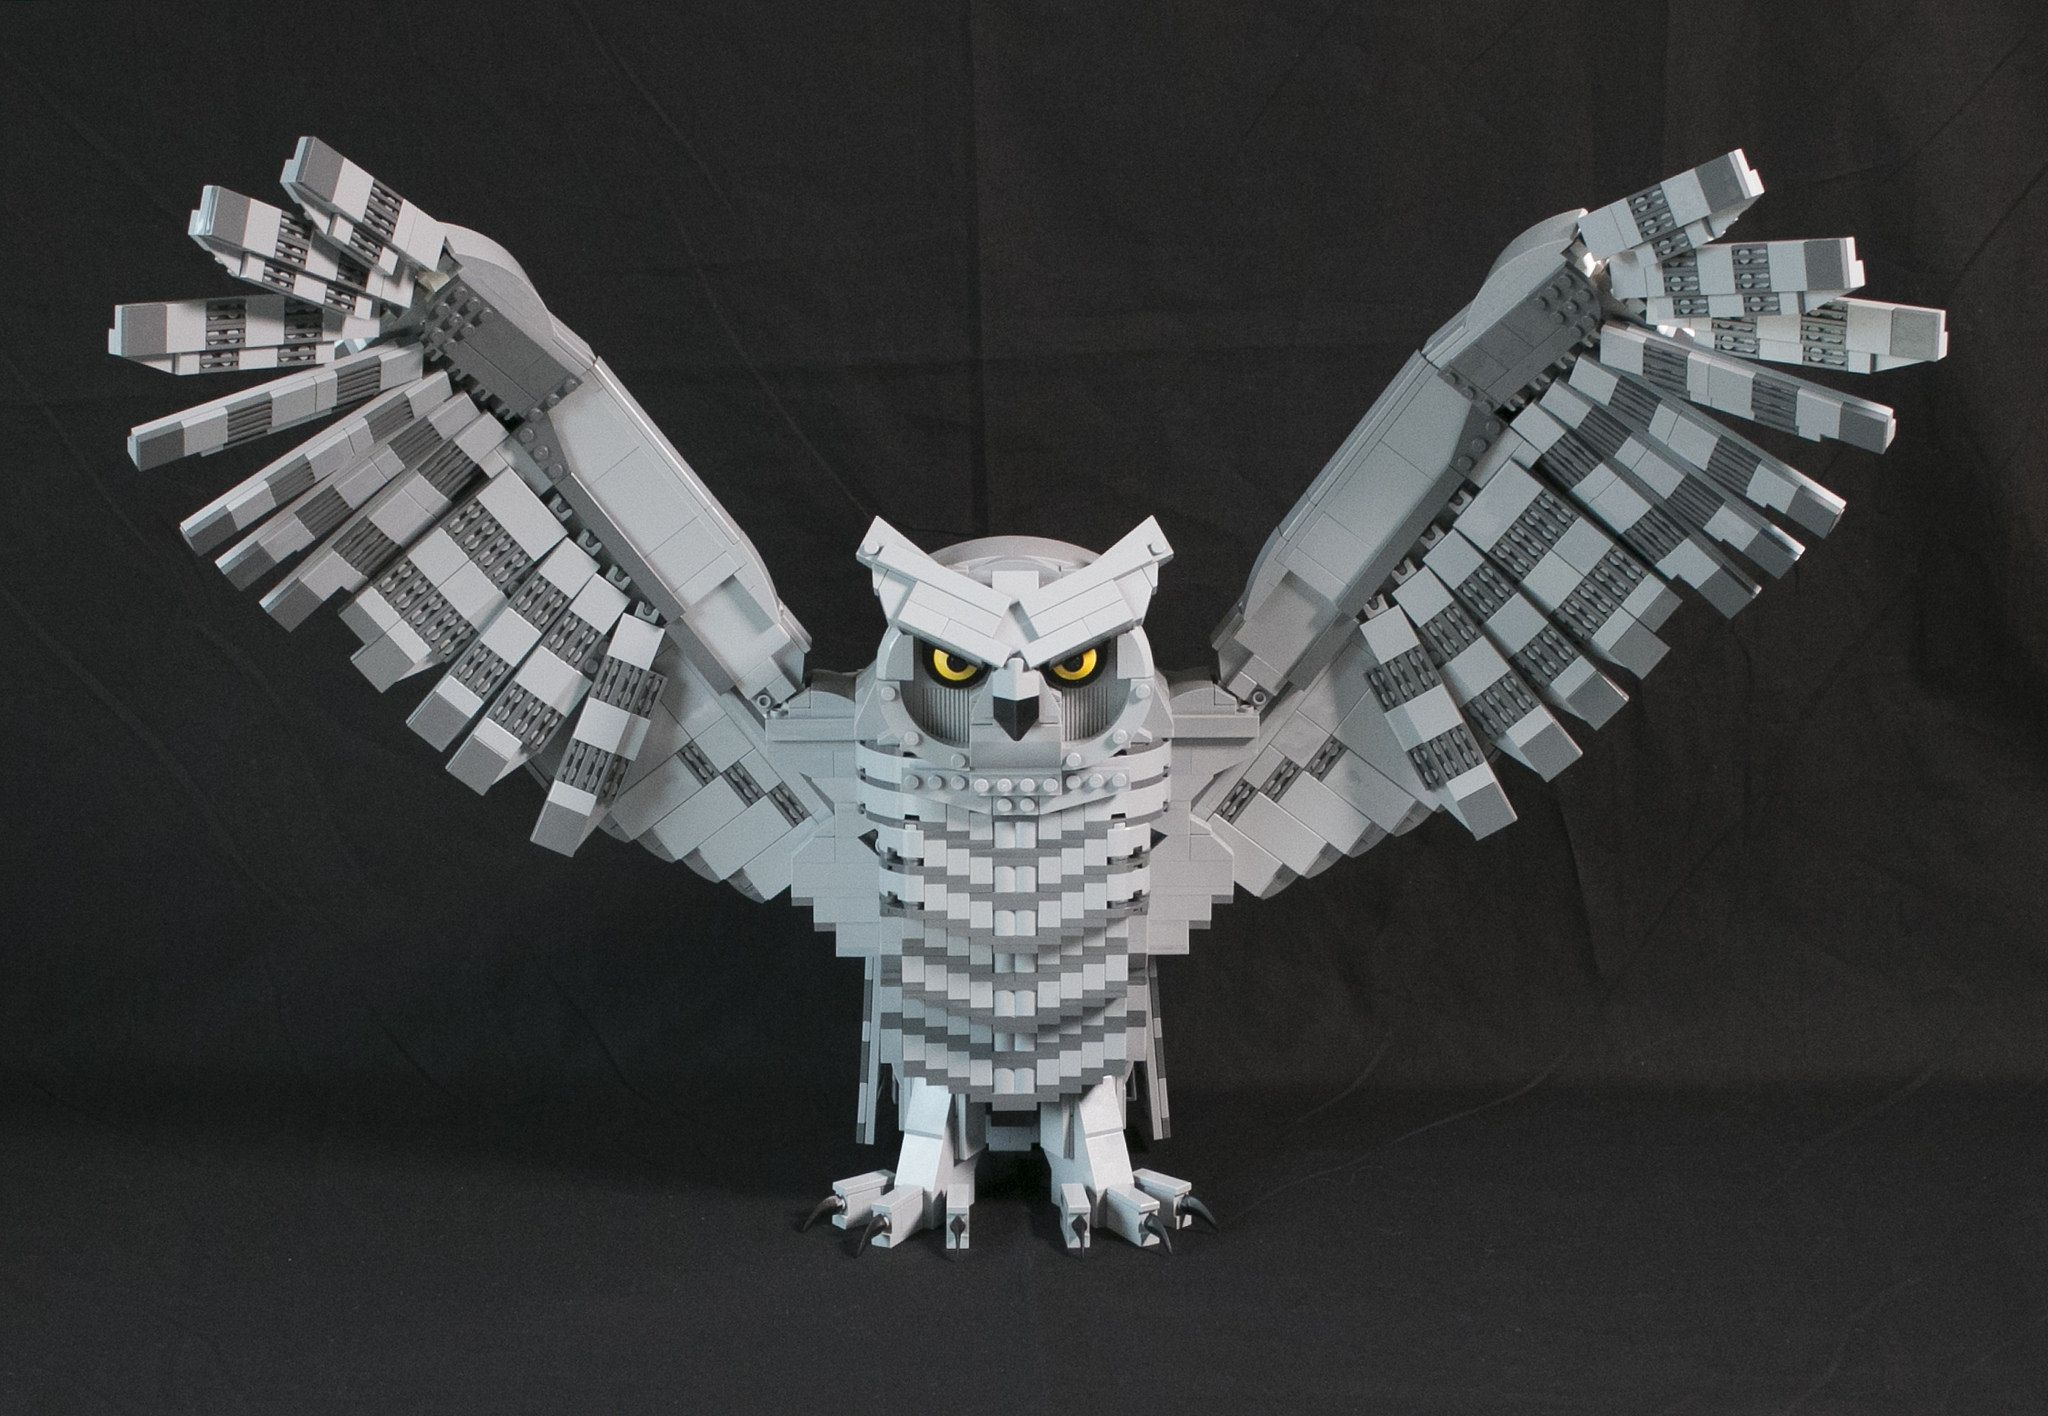 https://flic.kr/p/Sifqst   Owl_front   This owl was built as a part of a collaborative build based on the book series Mouse Guard by David Petersen